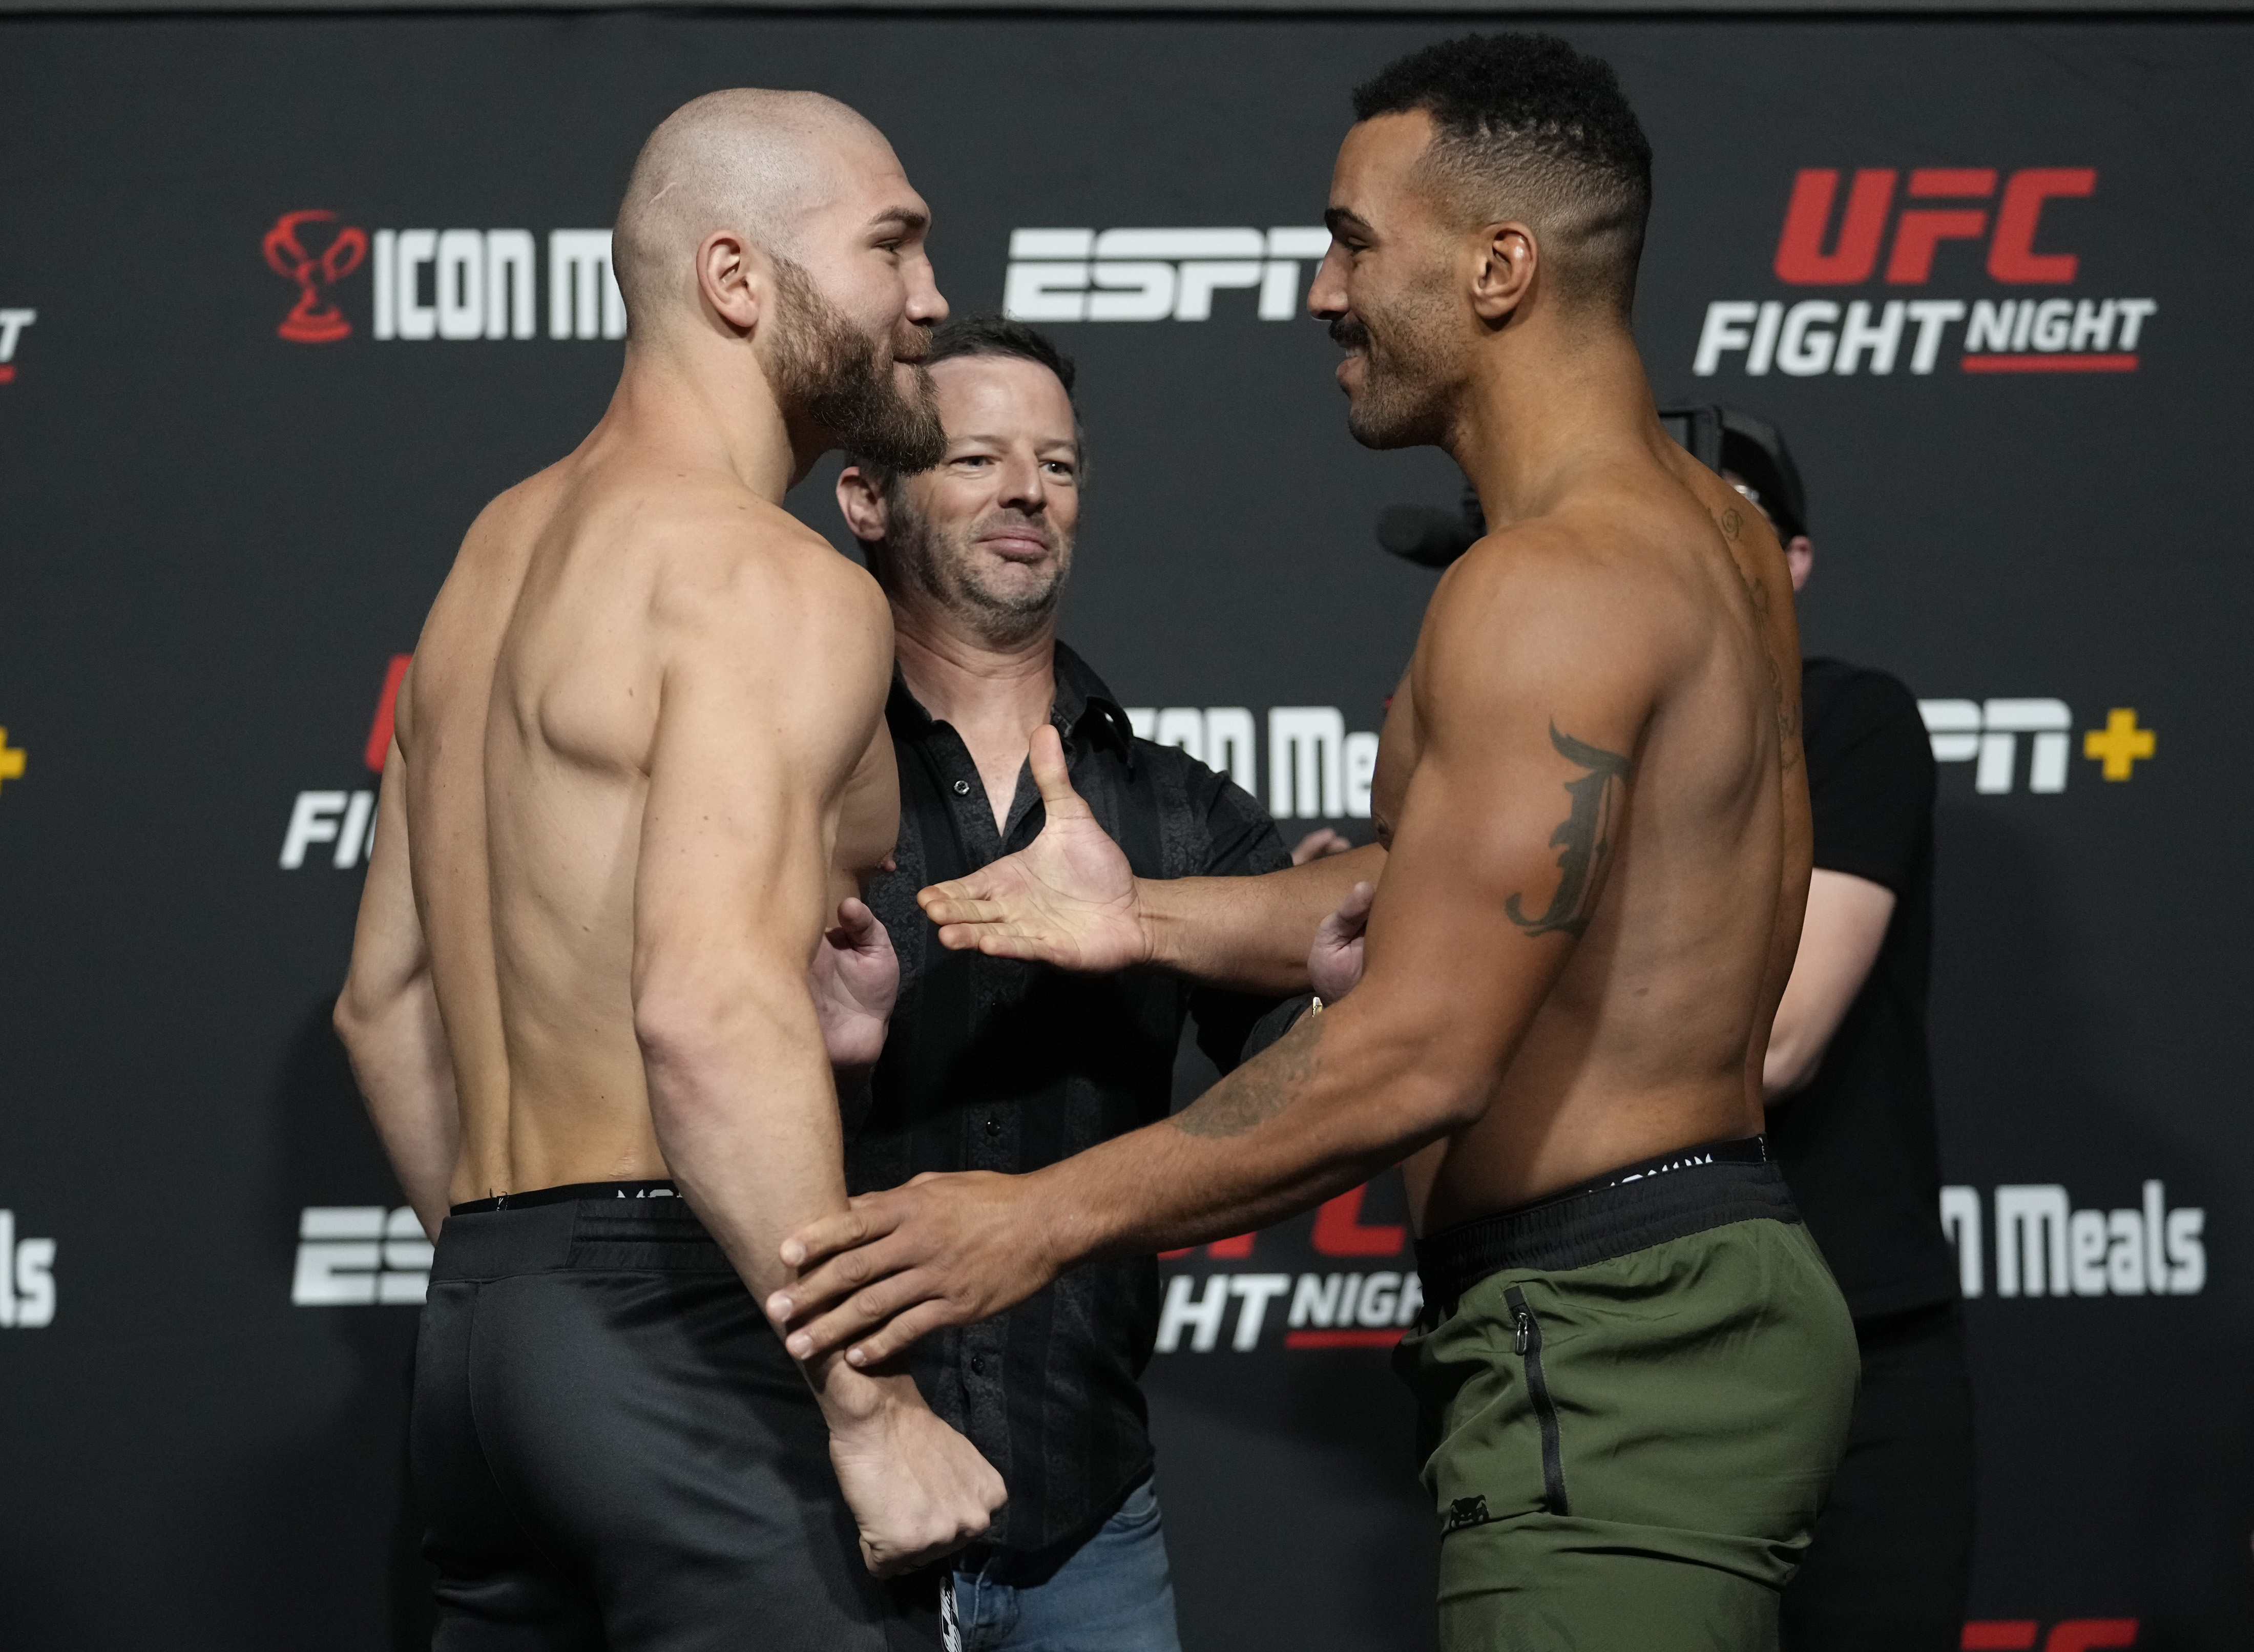 Opponents Ion Cutelaba of Moldova and Devin Clark face off during the UFC Fight Night weigh-in at UFC APEX on September 17, 2021 in Las Vegas, Nevada.